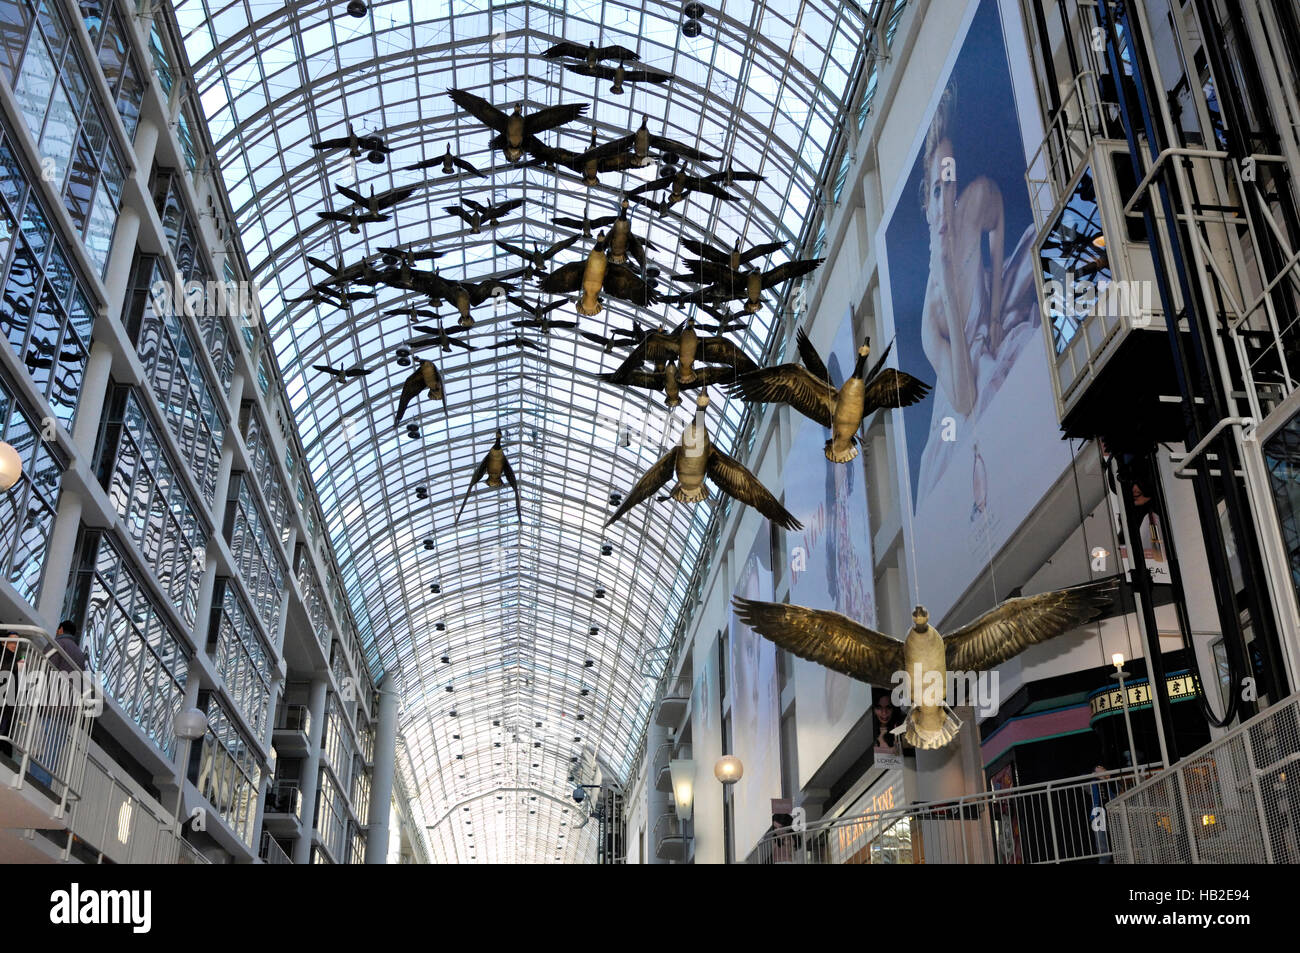 Canada geese flight stop under the glass roof of Toronto Eaton Centre, one of the largest shopping malls in North - Stock Image